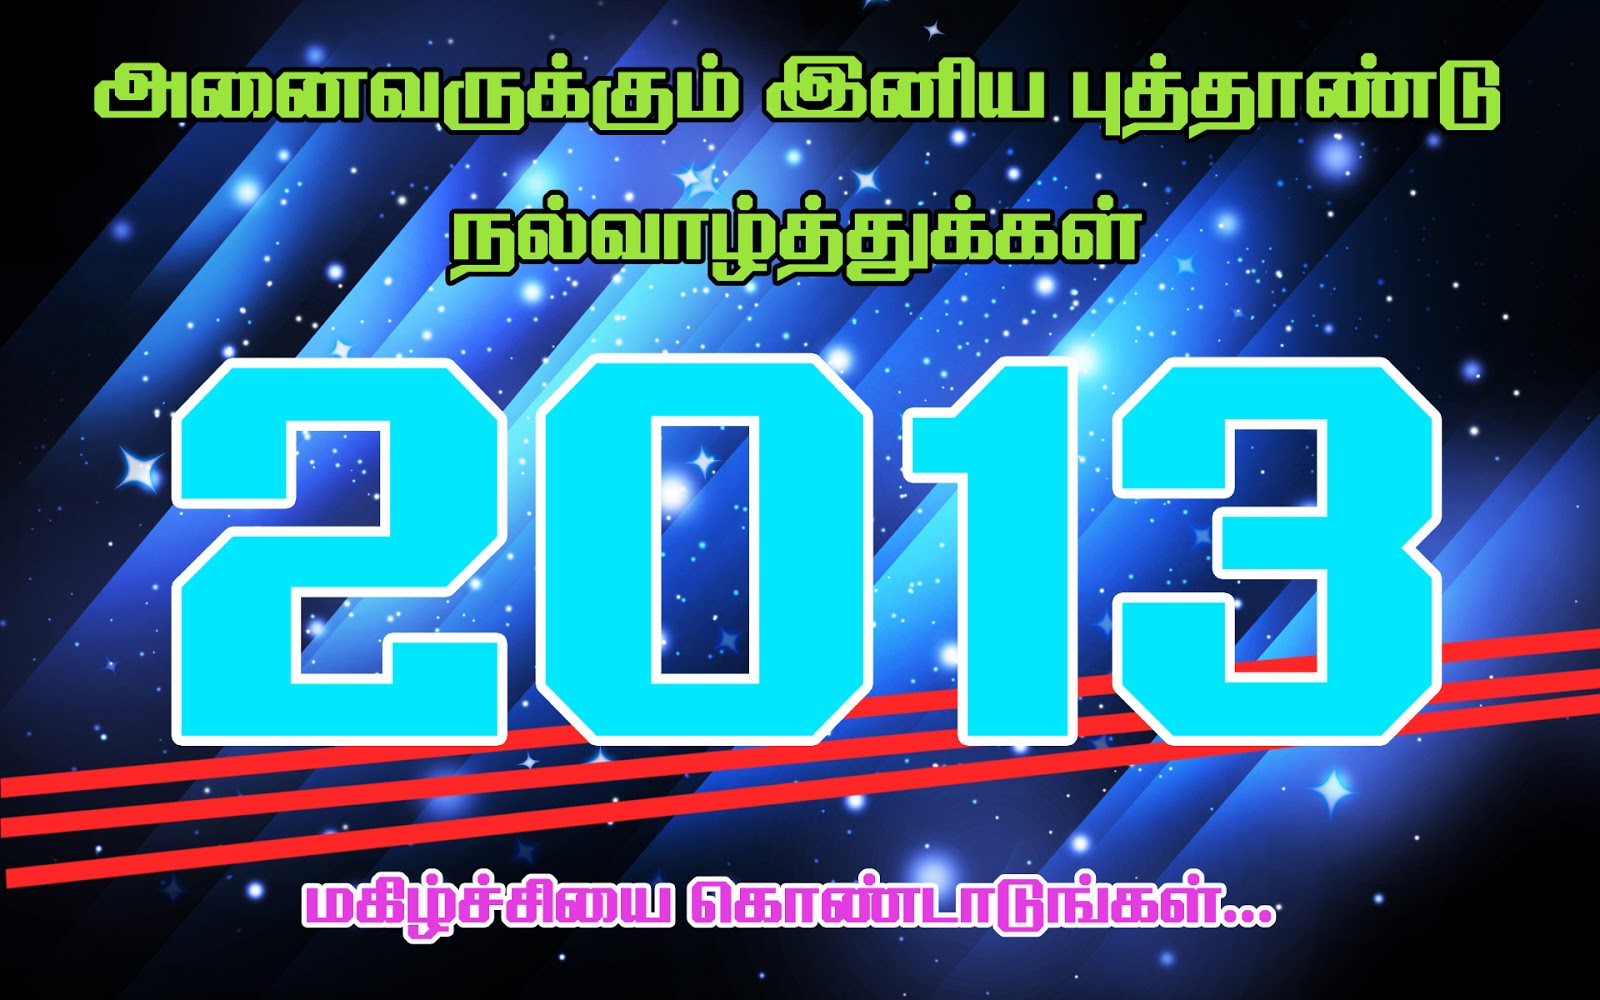 New Year Greetings 2013